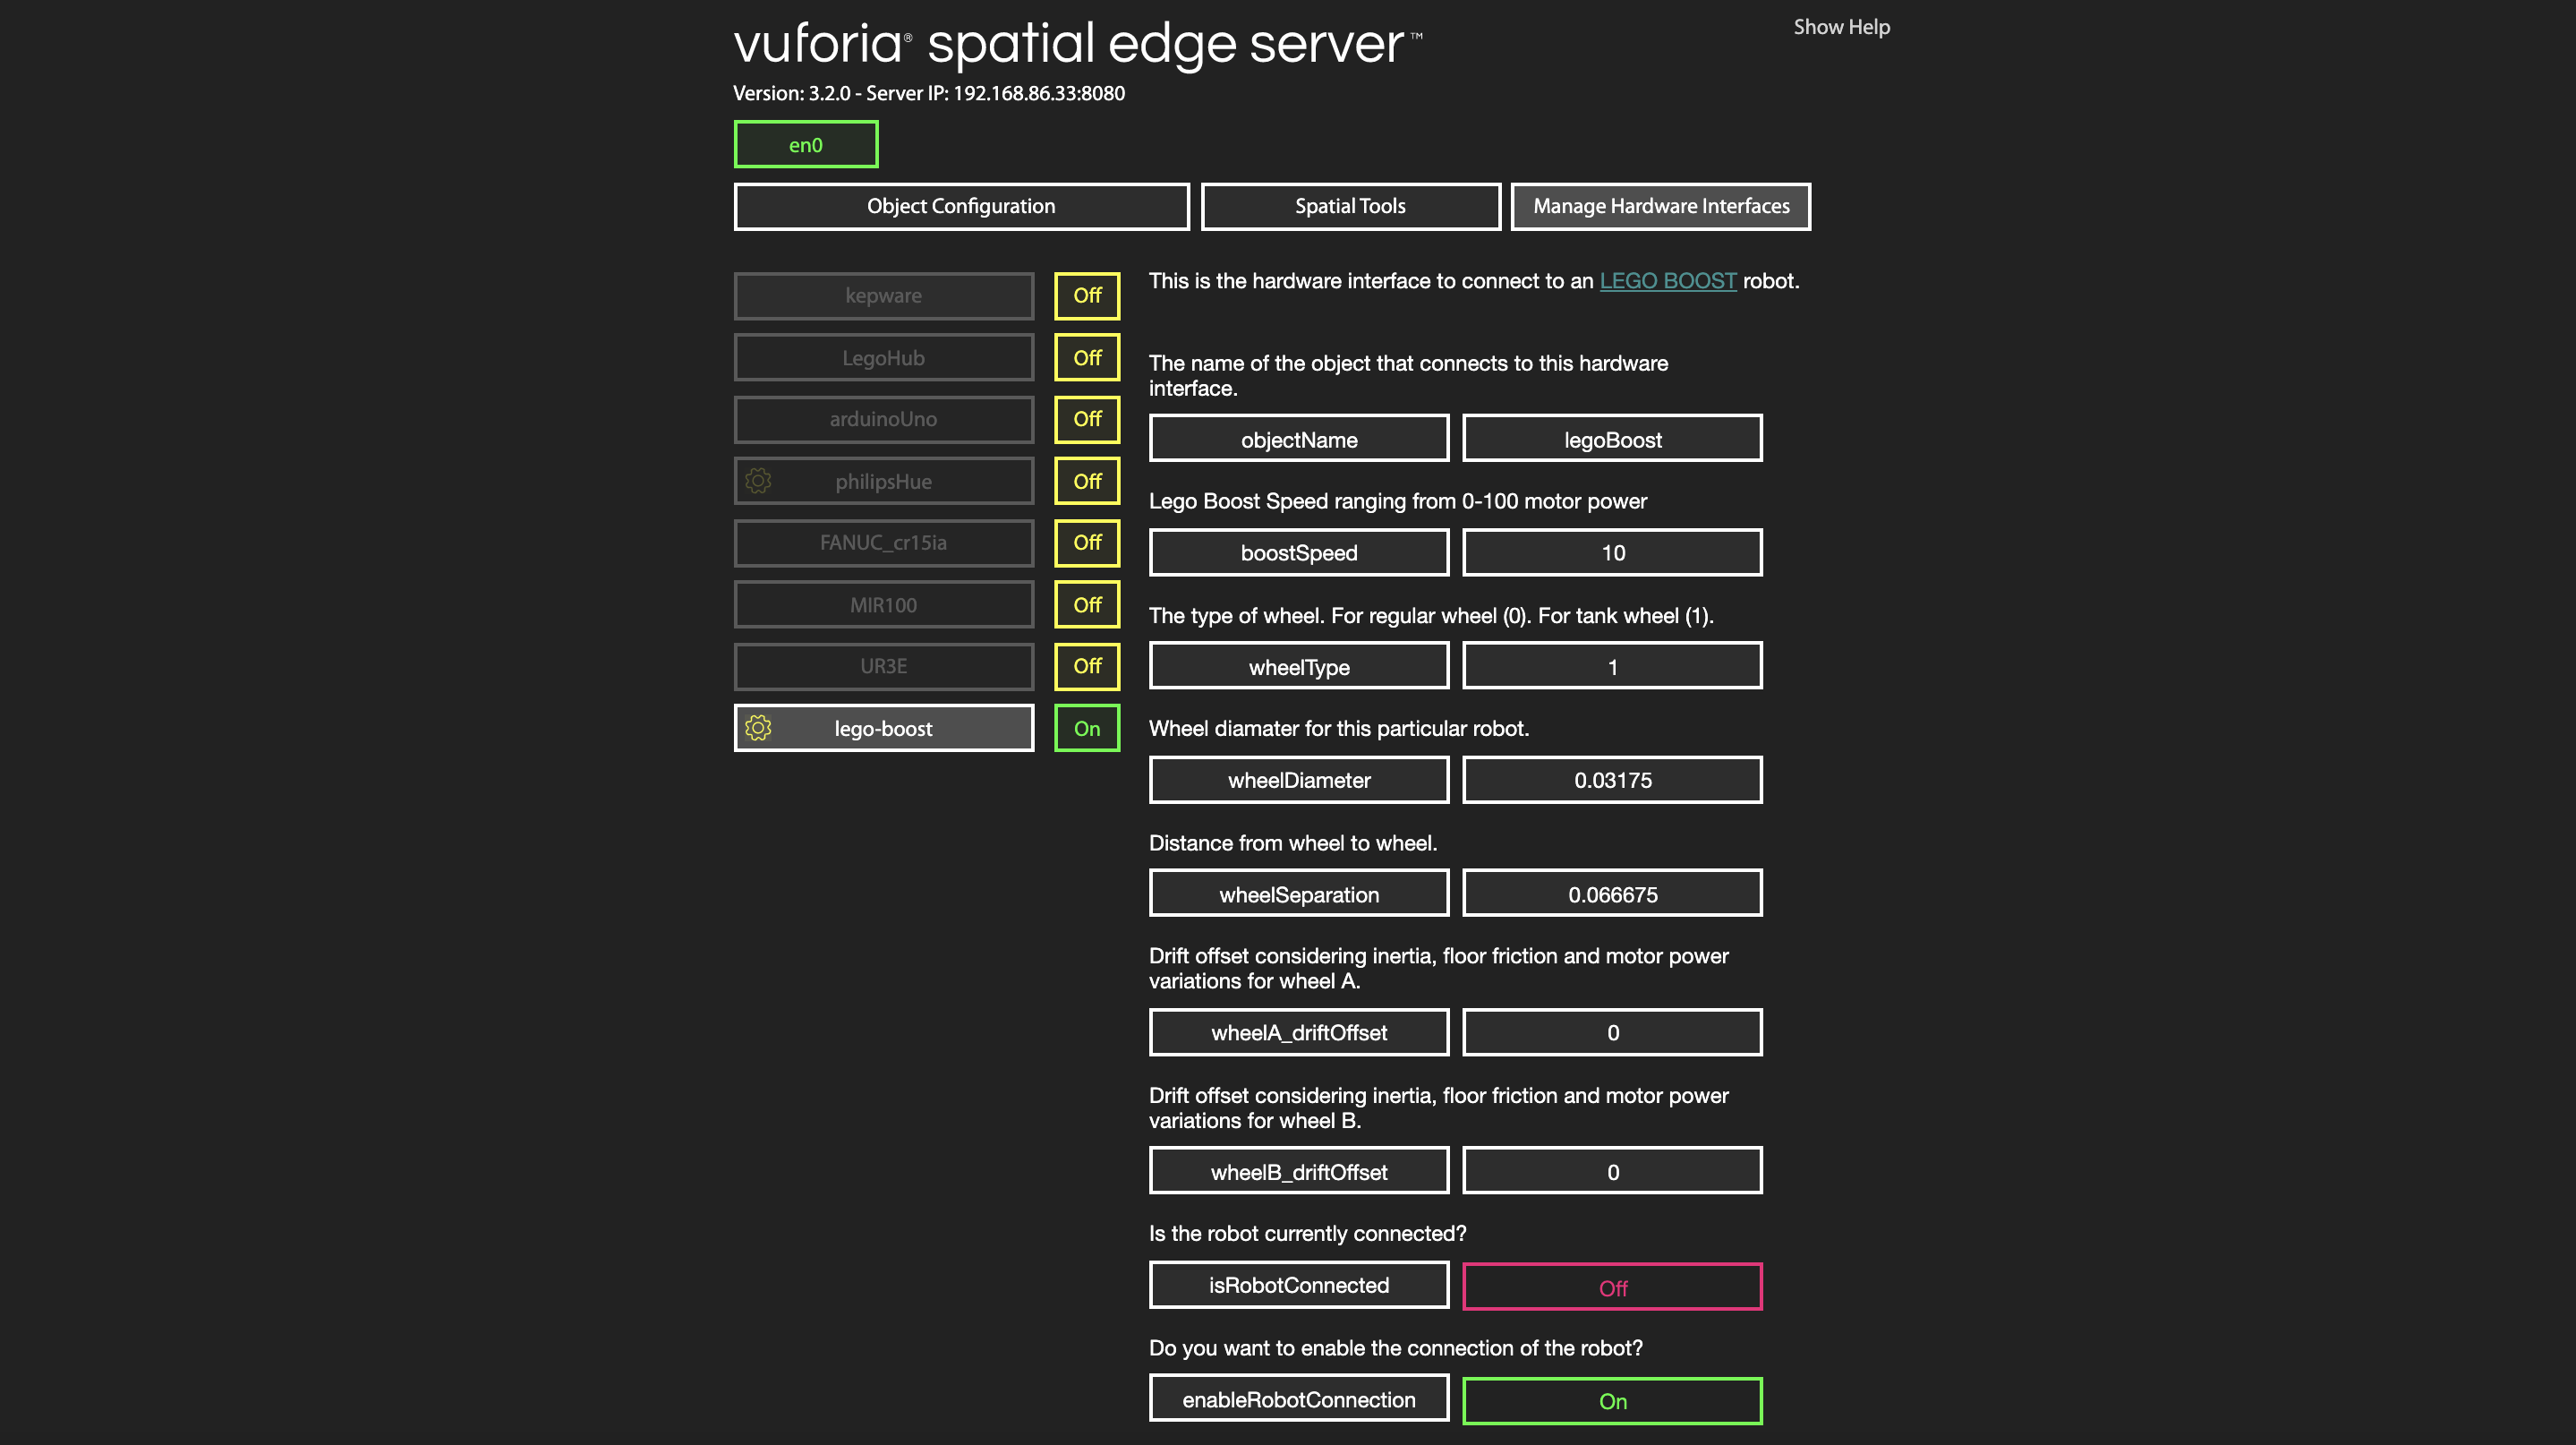 Image of server interface